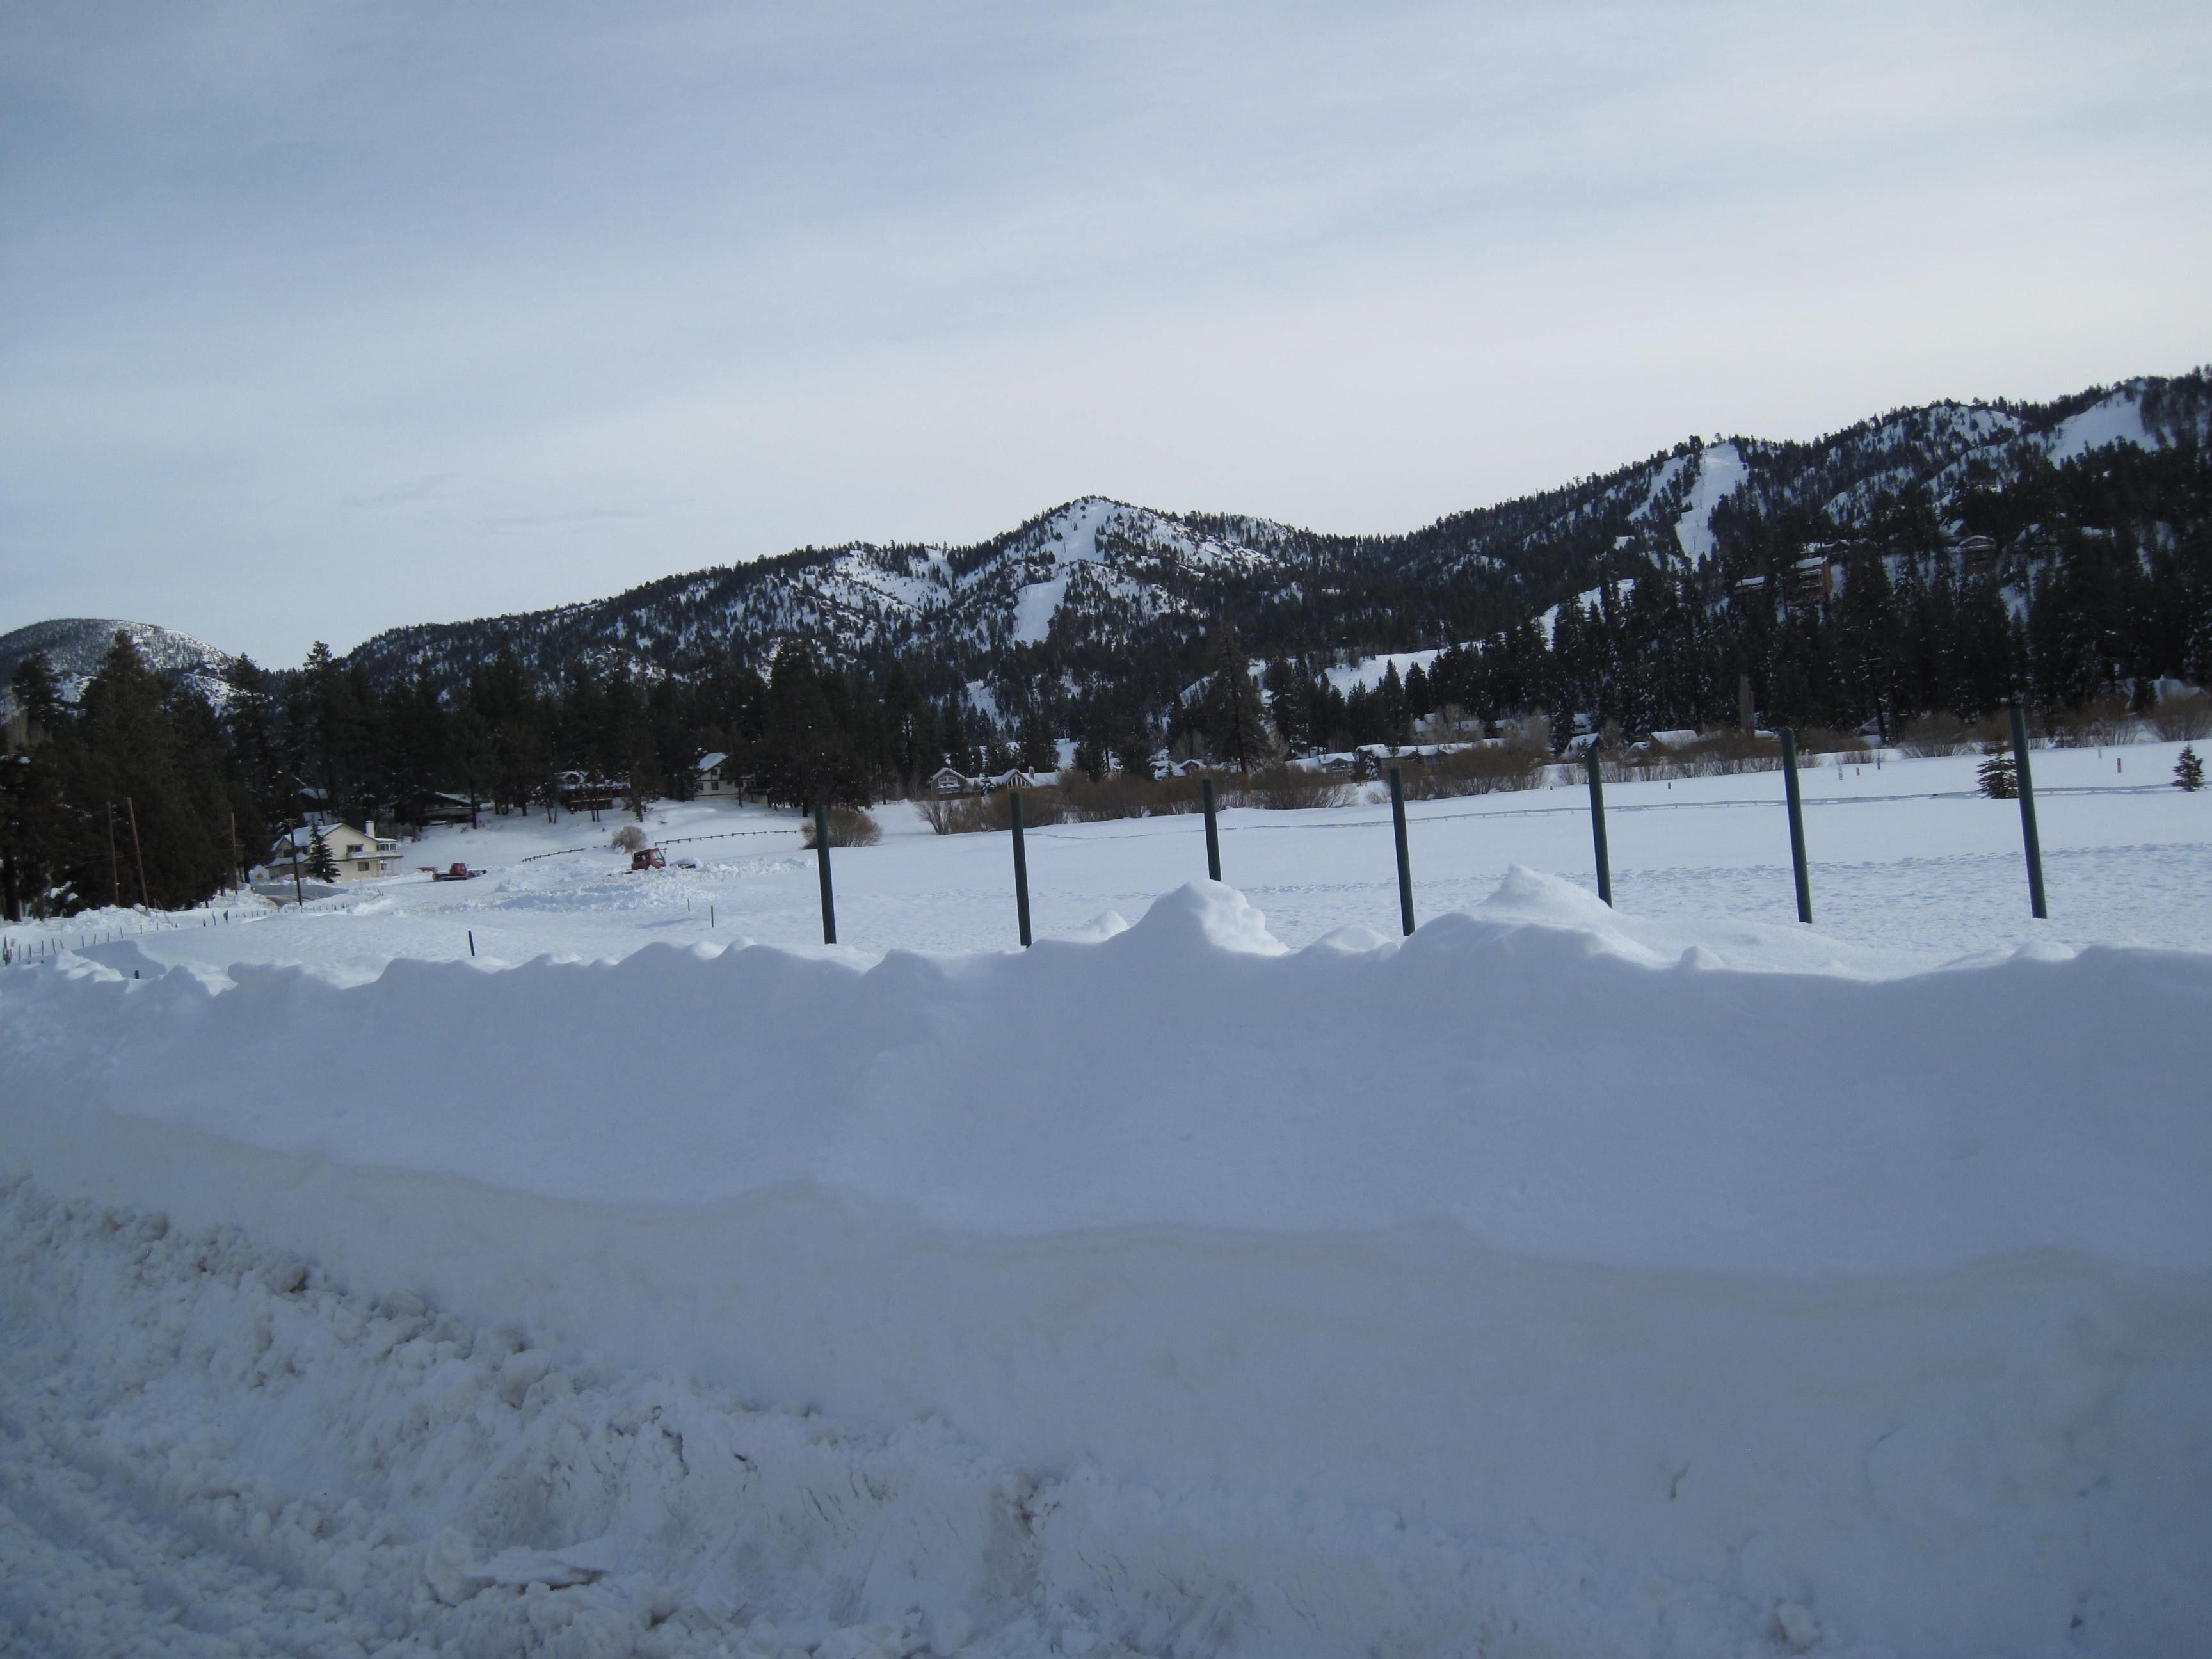 big bear ca in winter snow cool photos mountains. Black Bedroom Furniture Sets. Home Design Ideas